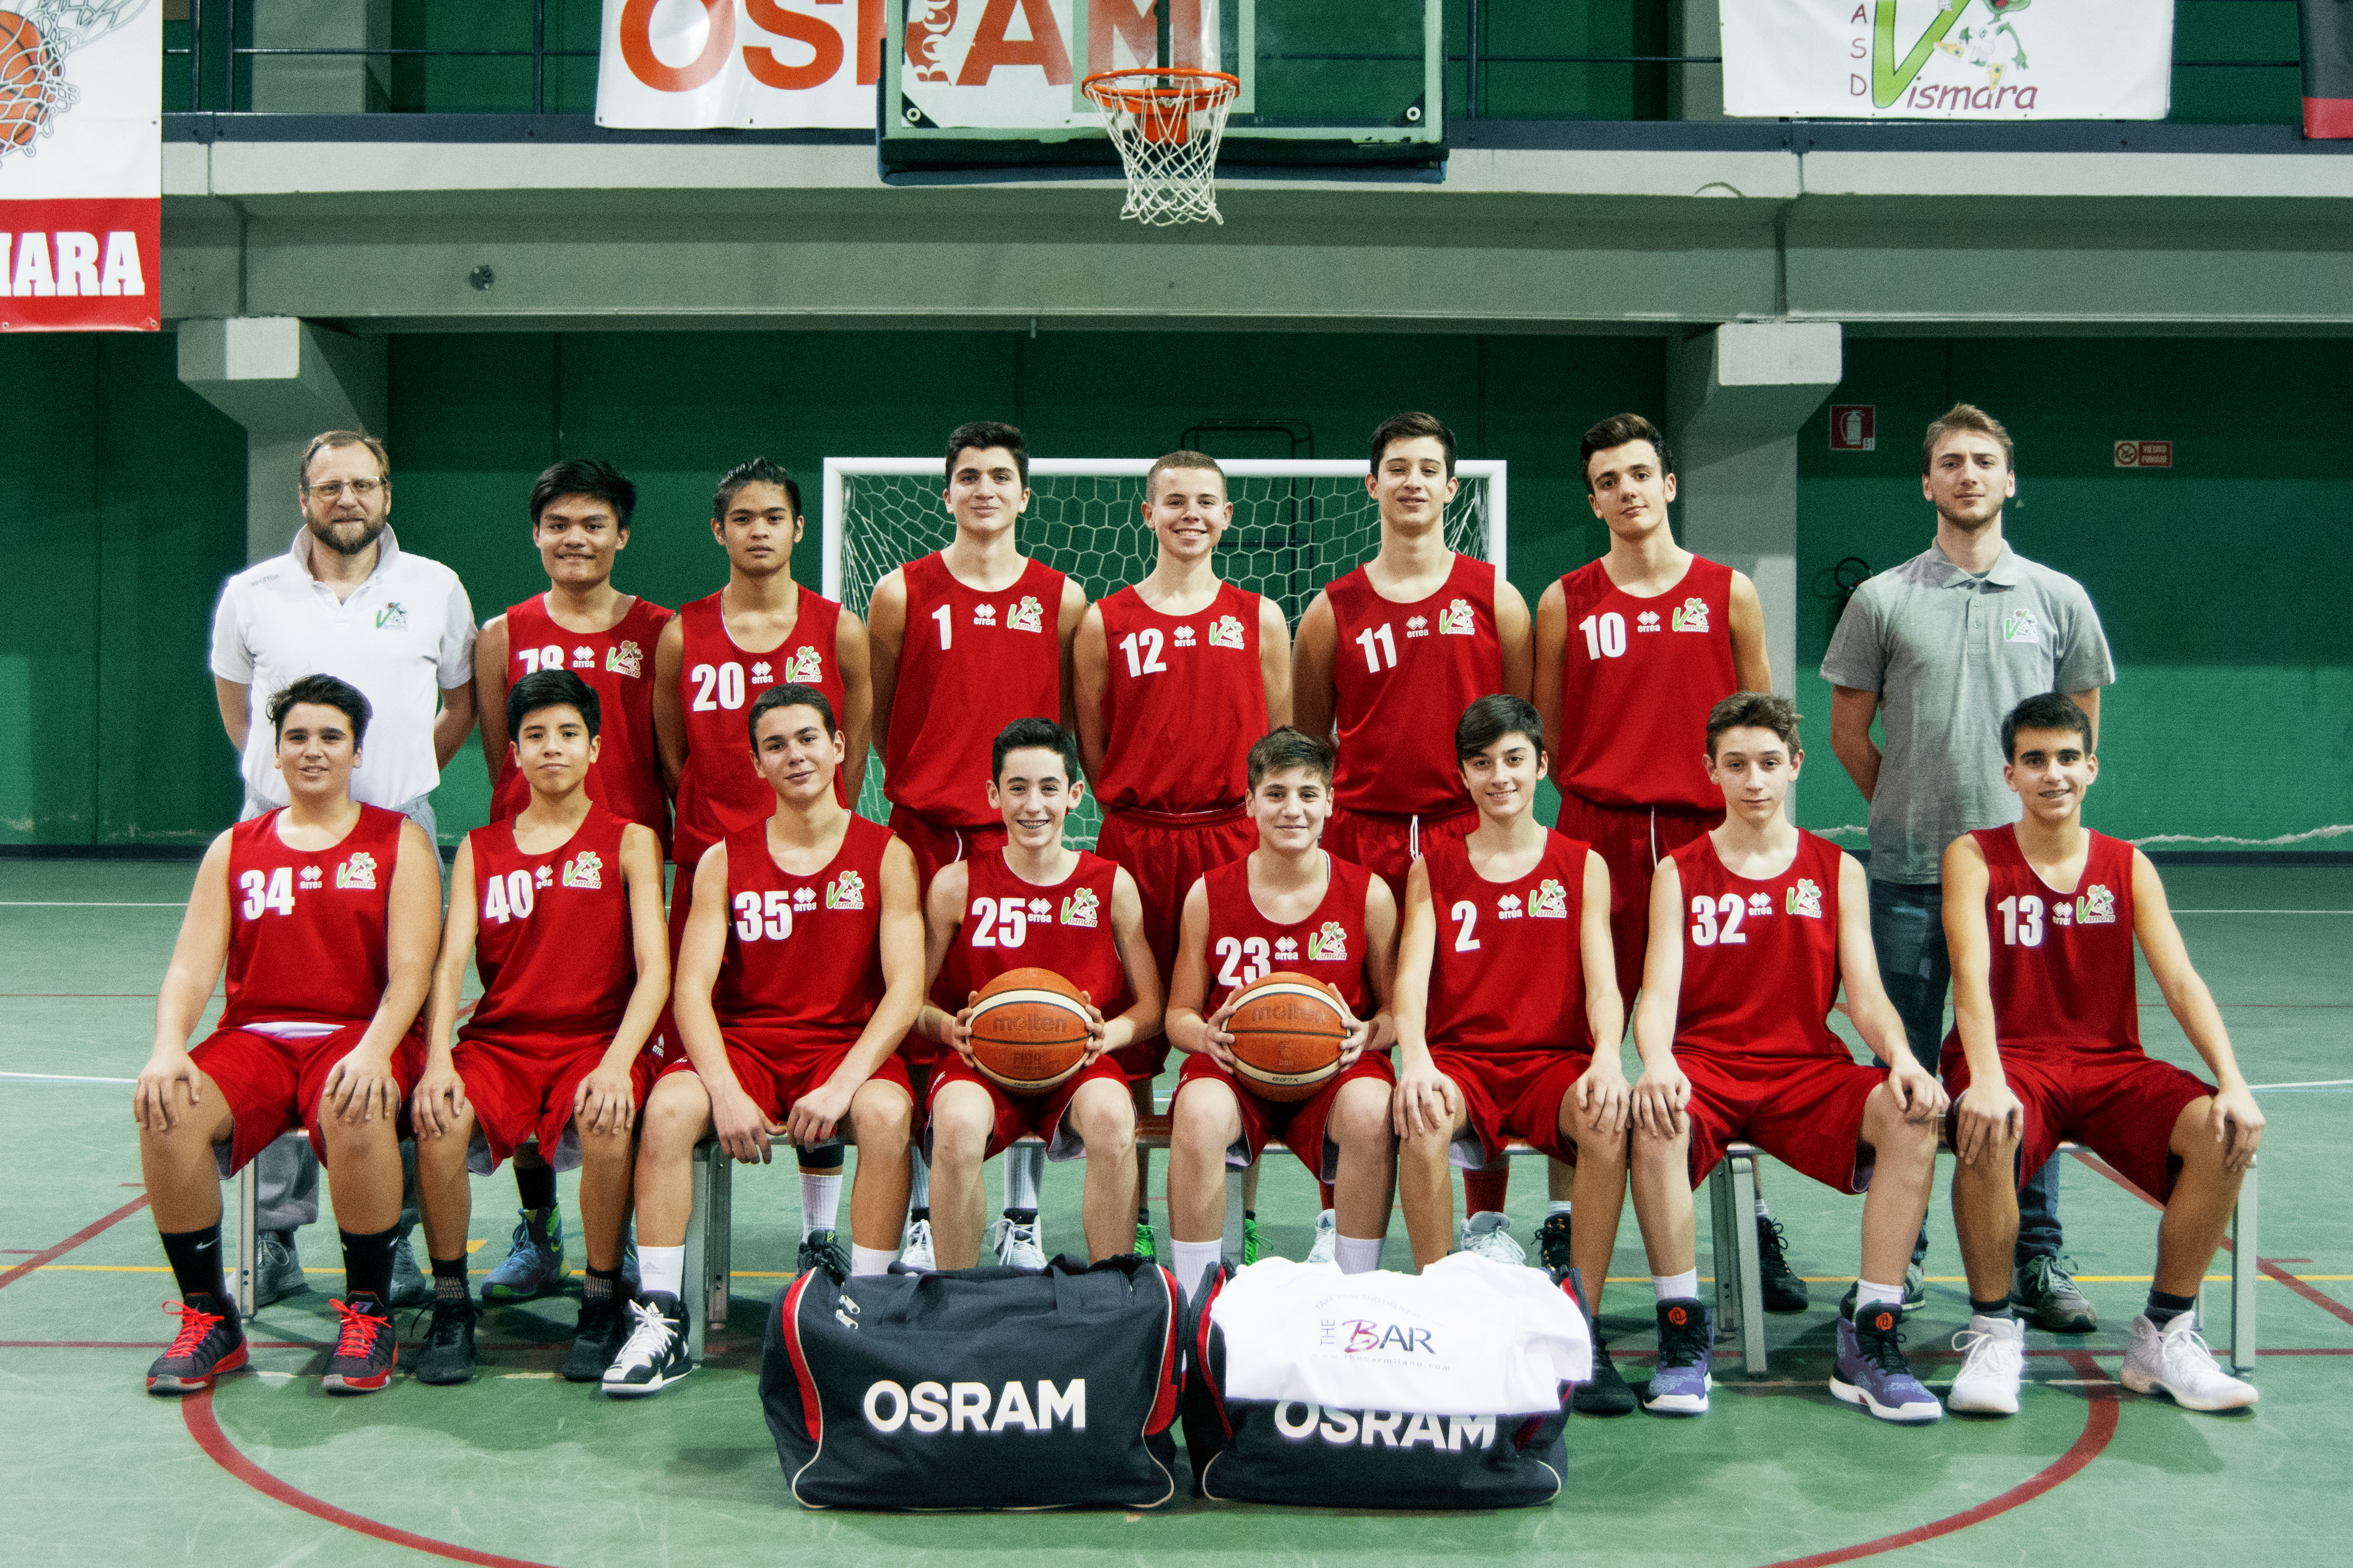 Uisp Basket Milano Calendario.Under 15 A S D Vismara Basket